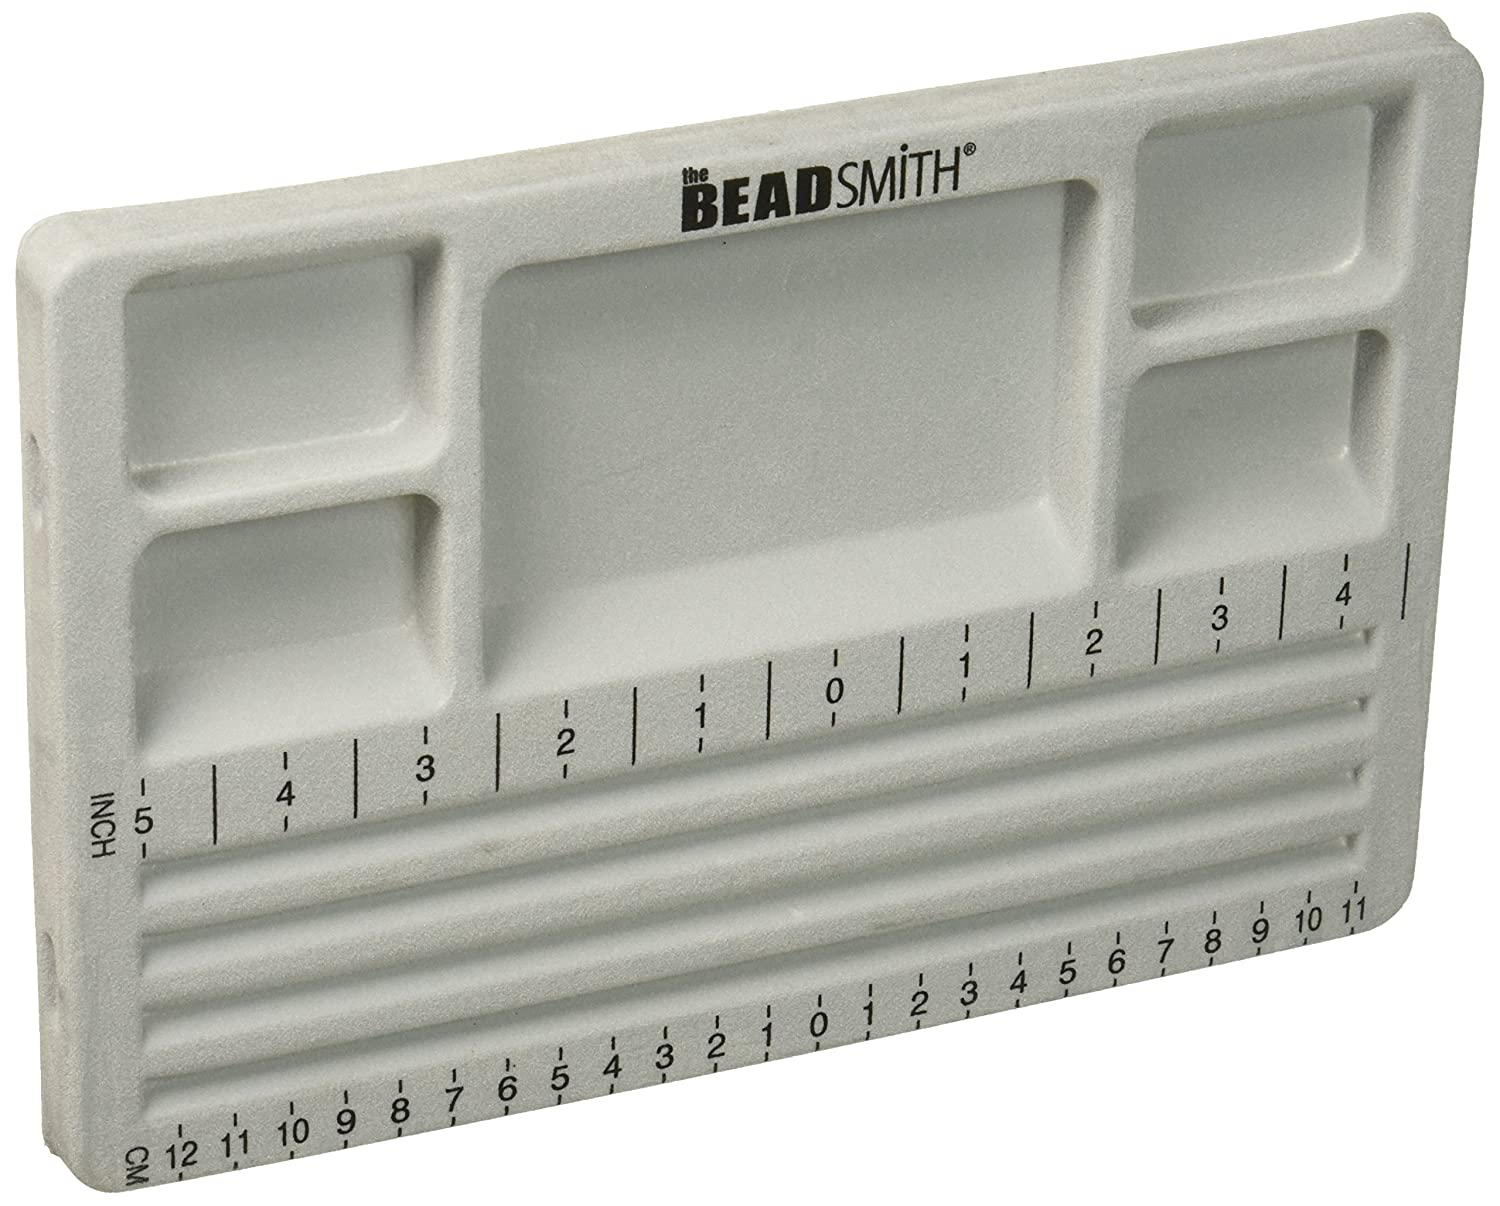 The BeadSmith Travel Bead Design in Beading Board and Gray Flock with Lid 7.75 by 11.25-Inch